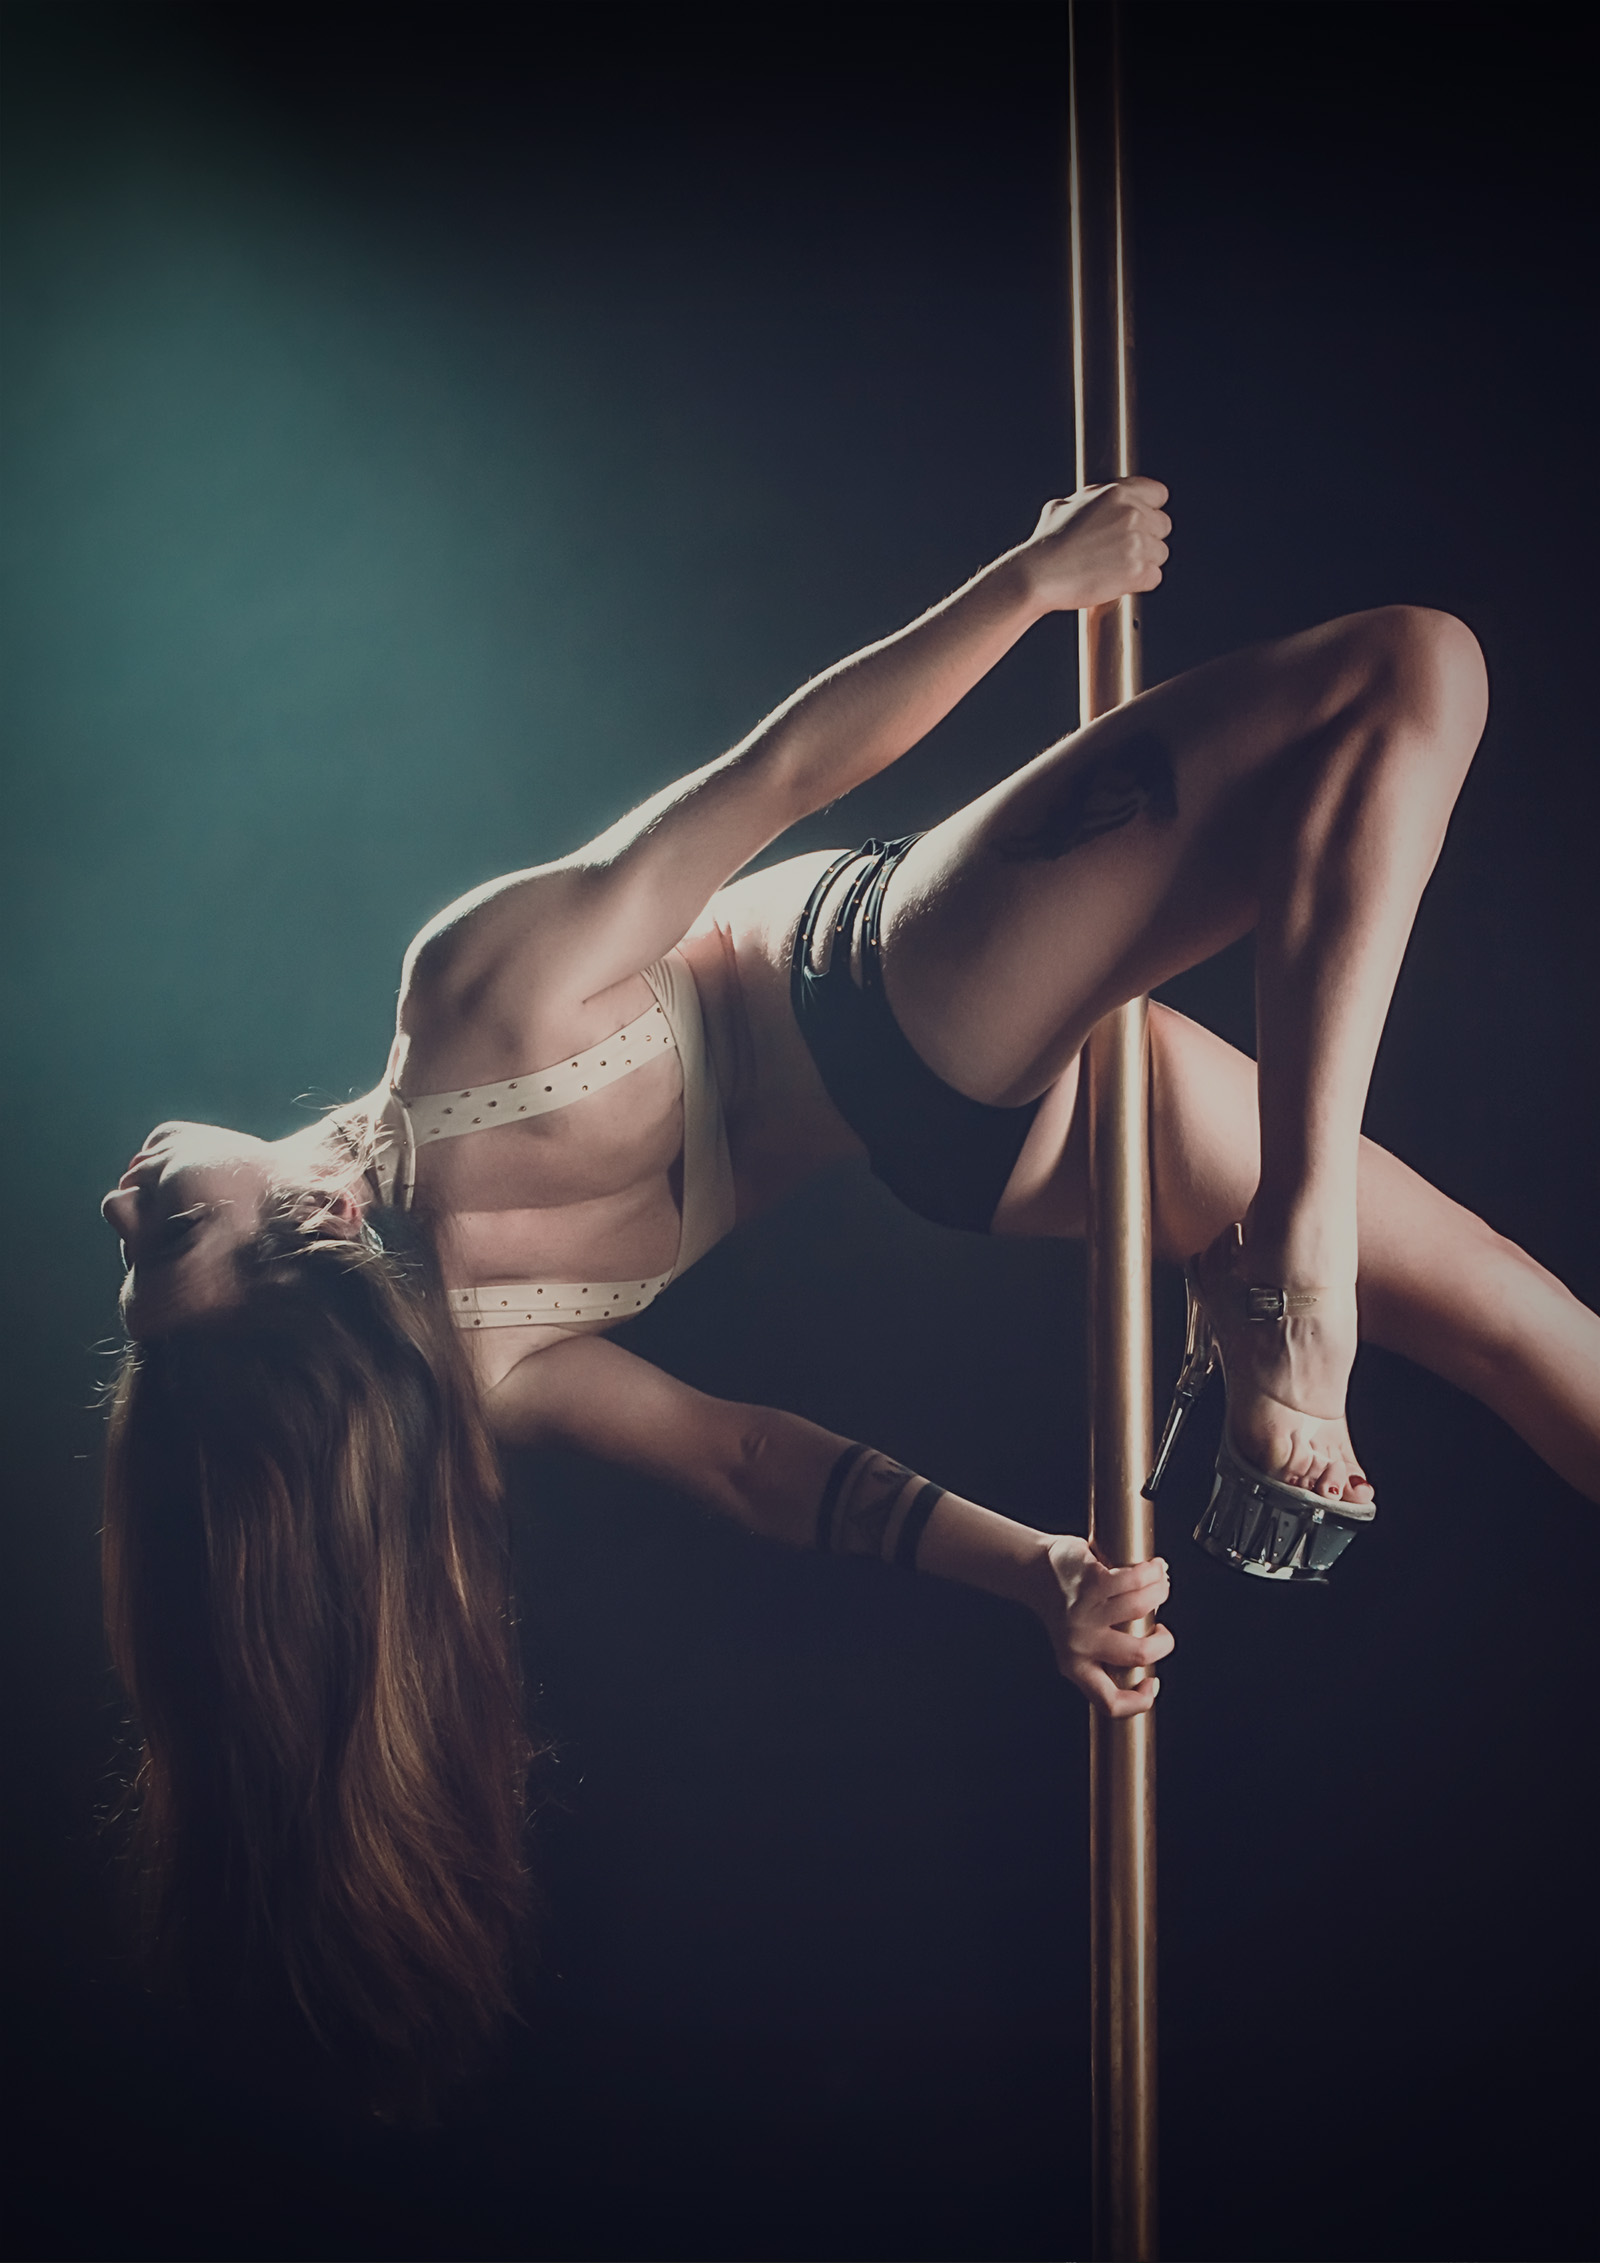 PoleDance Show – SexParty